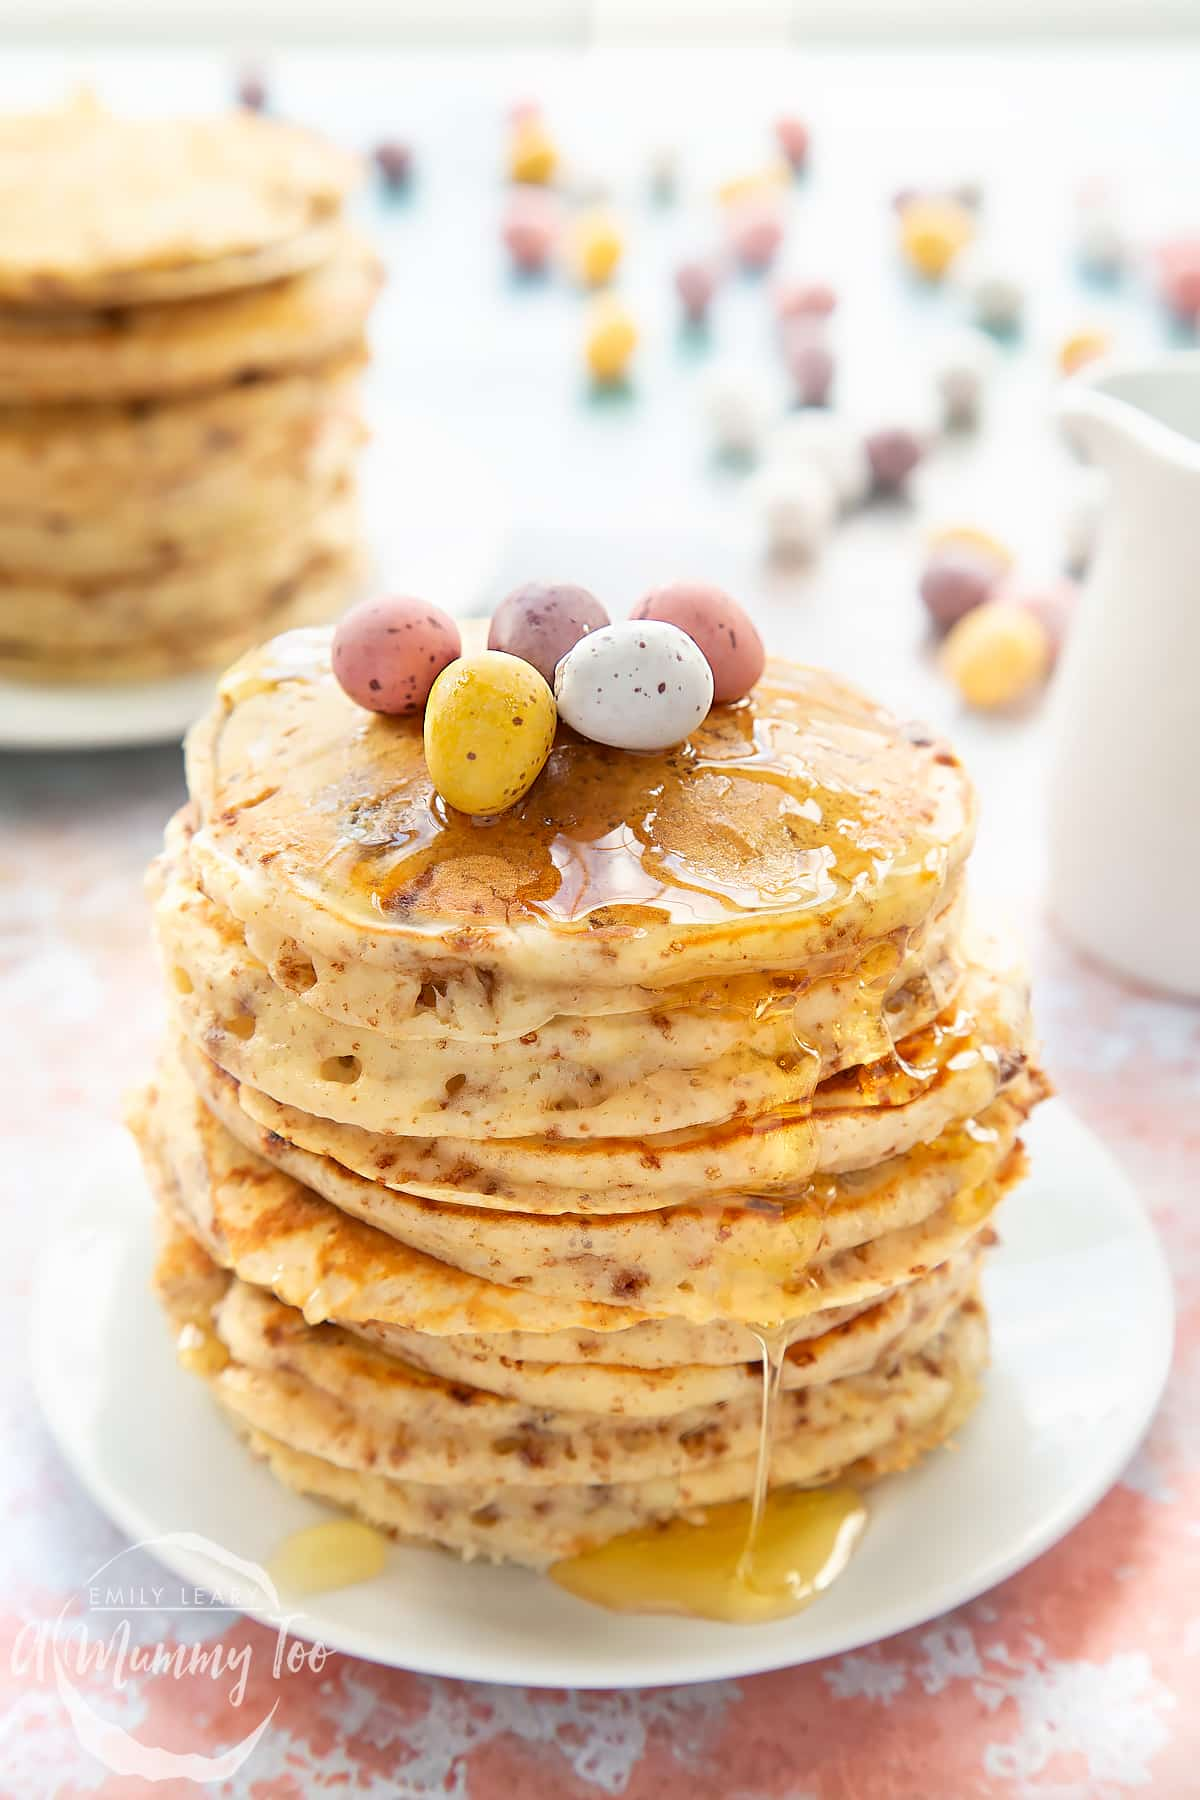 Thick, fluffy Mini Egg pancakes on a white plate in a tall stack. They are drizzled with syrup and topped with Mini Eggs.